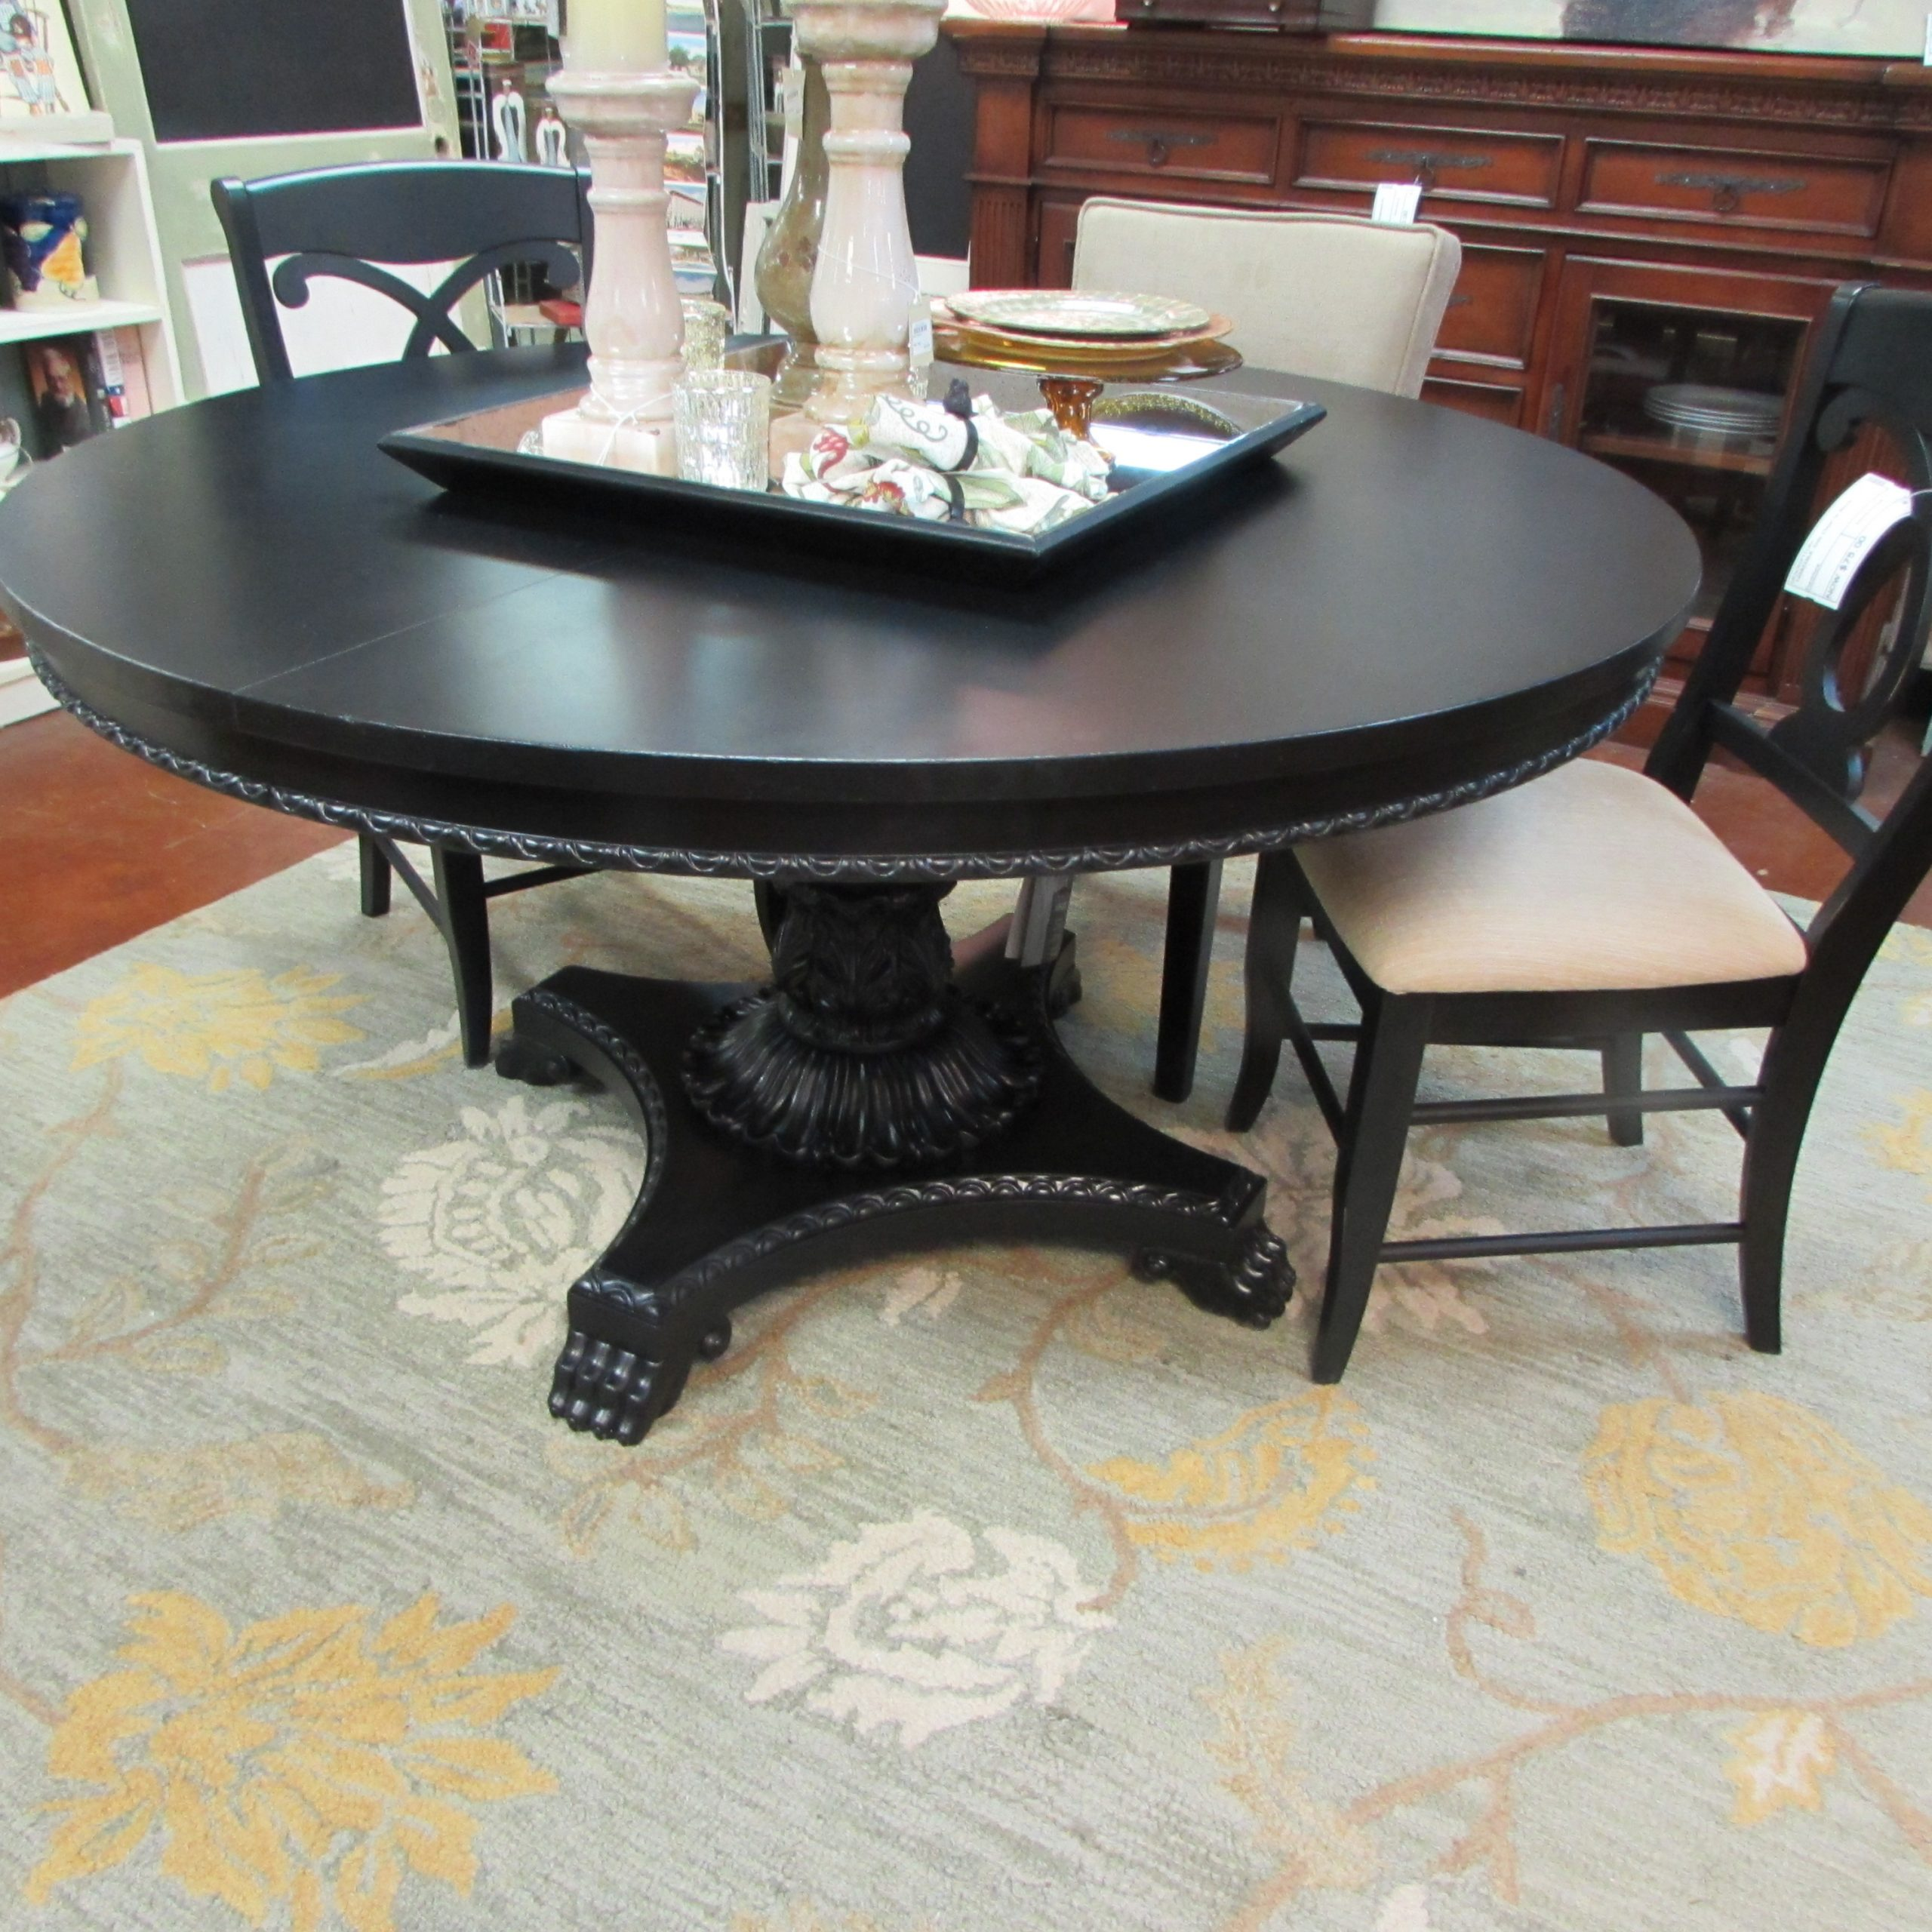 Restored Large Round Pedestal Dining Table On Awesome Base Intended For Most Current Villani Pedestal Dining Tables (View 8 of 15)